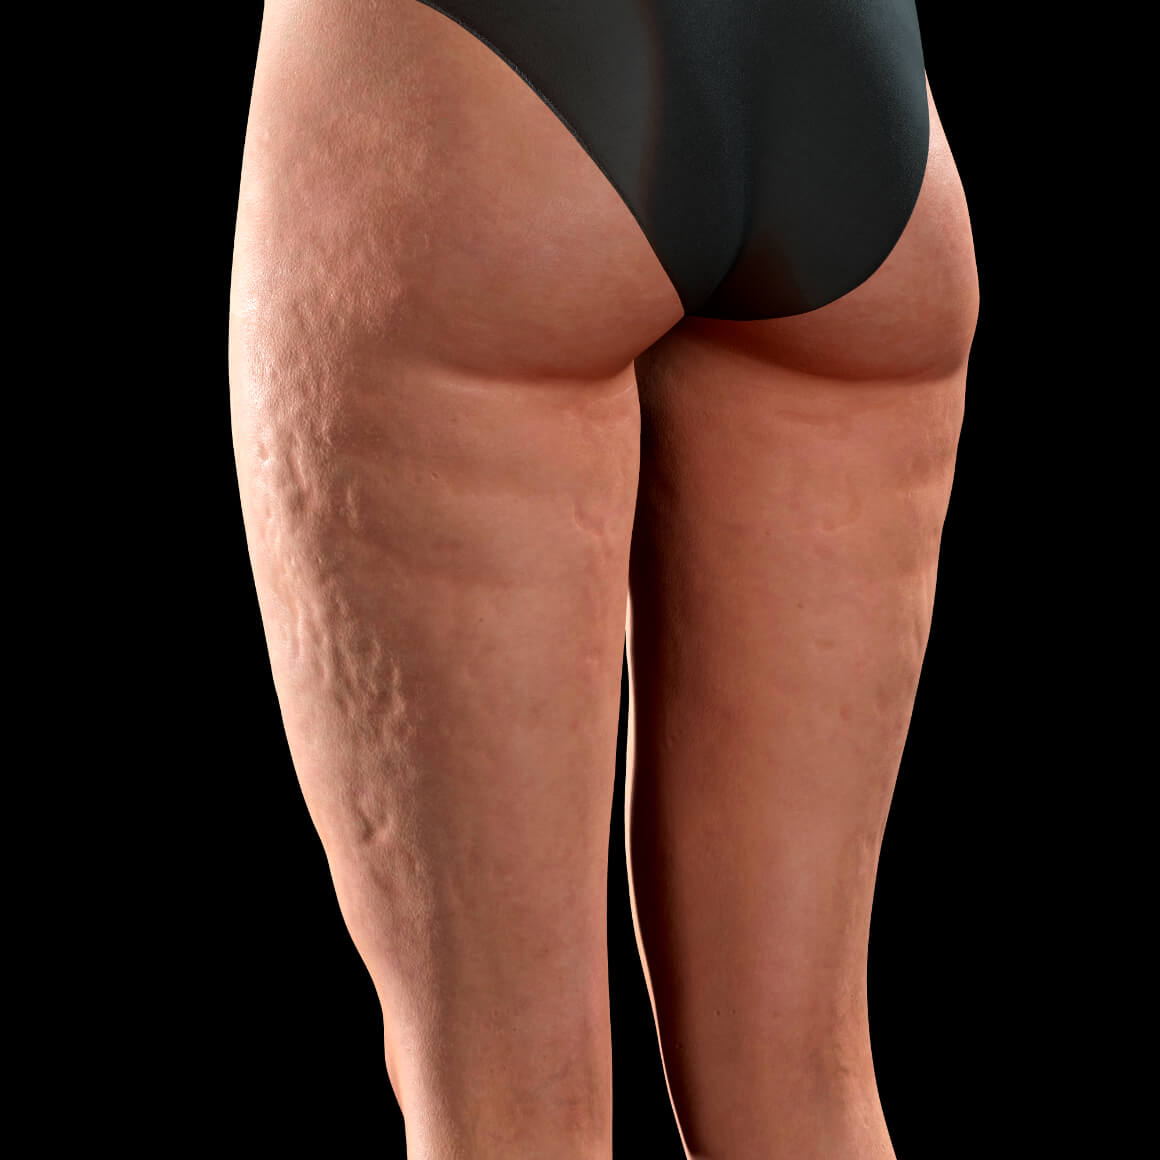 Female patient from Clinique Chloé positioned at an angle showing cellulite on her thighs